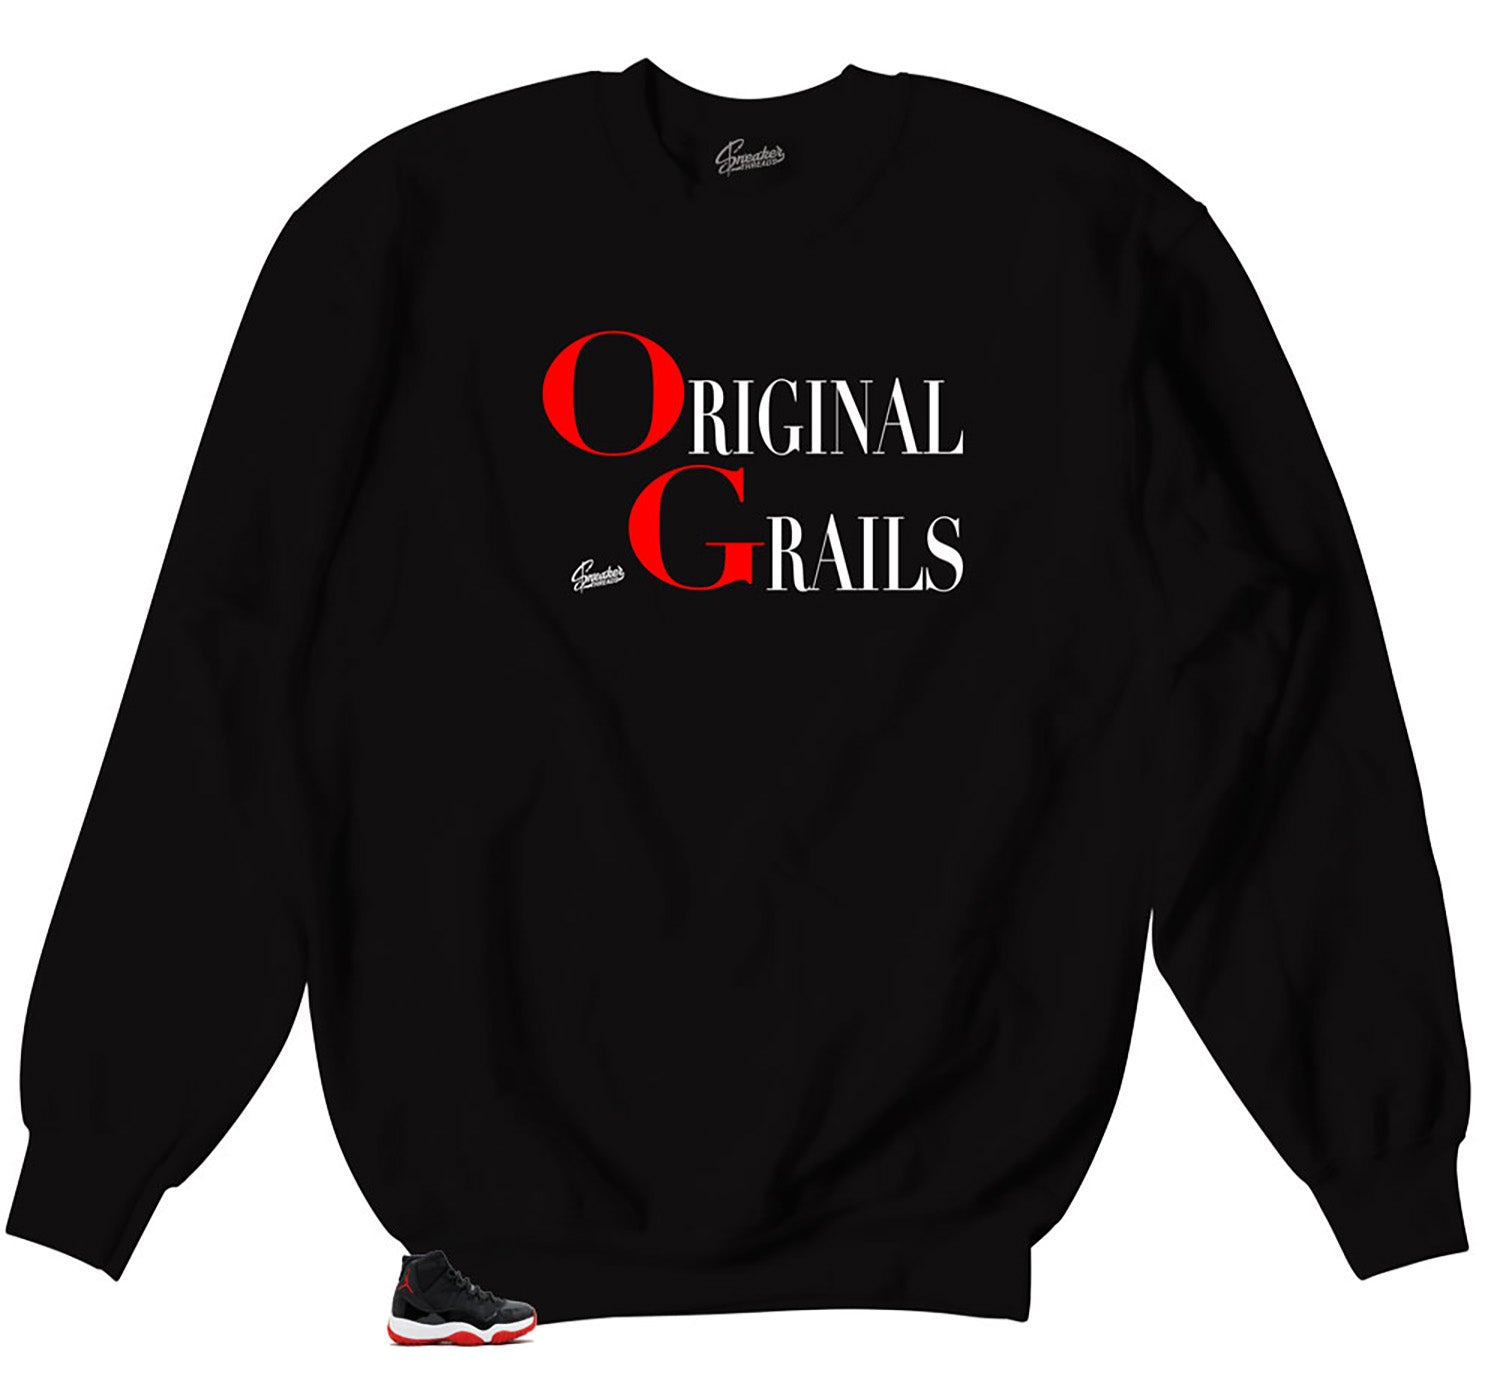 b099218a488 Jordan 11 Bred Grails Sweater. From $49.99. No reviews. Jordan 11 bred  sneaker matching tees. Best bred 11 clothing matches. Shirt · Add to  Wishlist